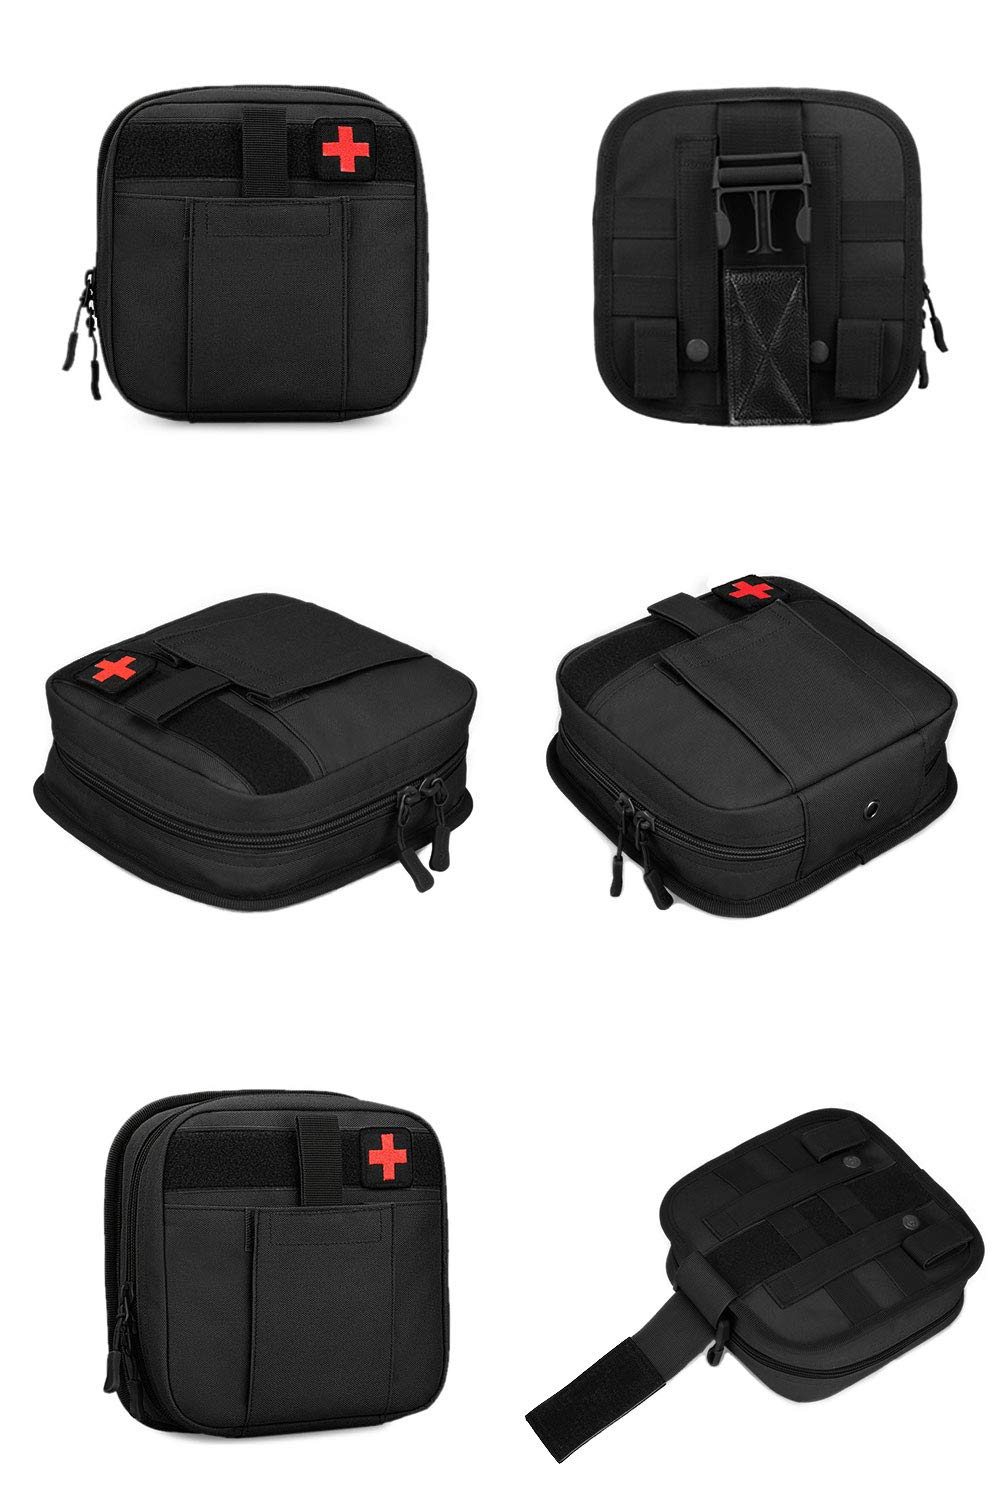 Tactical Thigh Hip Outdoor Pack MOLLE First Aid Kit Bag IFAK Medical Utility Pouch CamGo Multifunctional Drop Leg Waist Bag